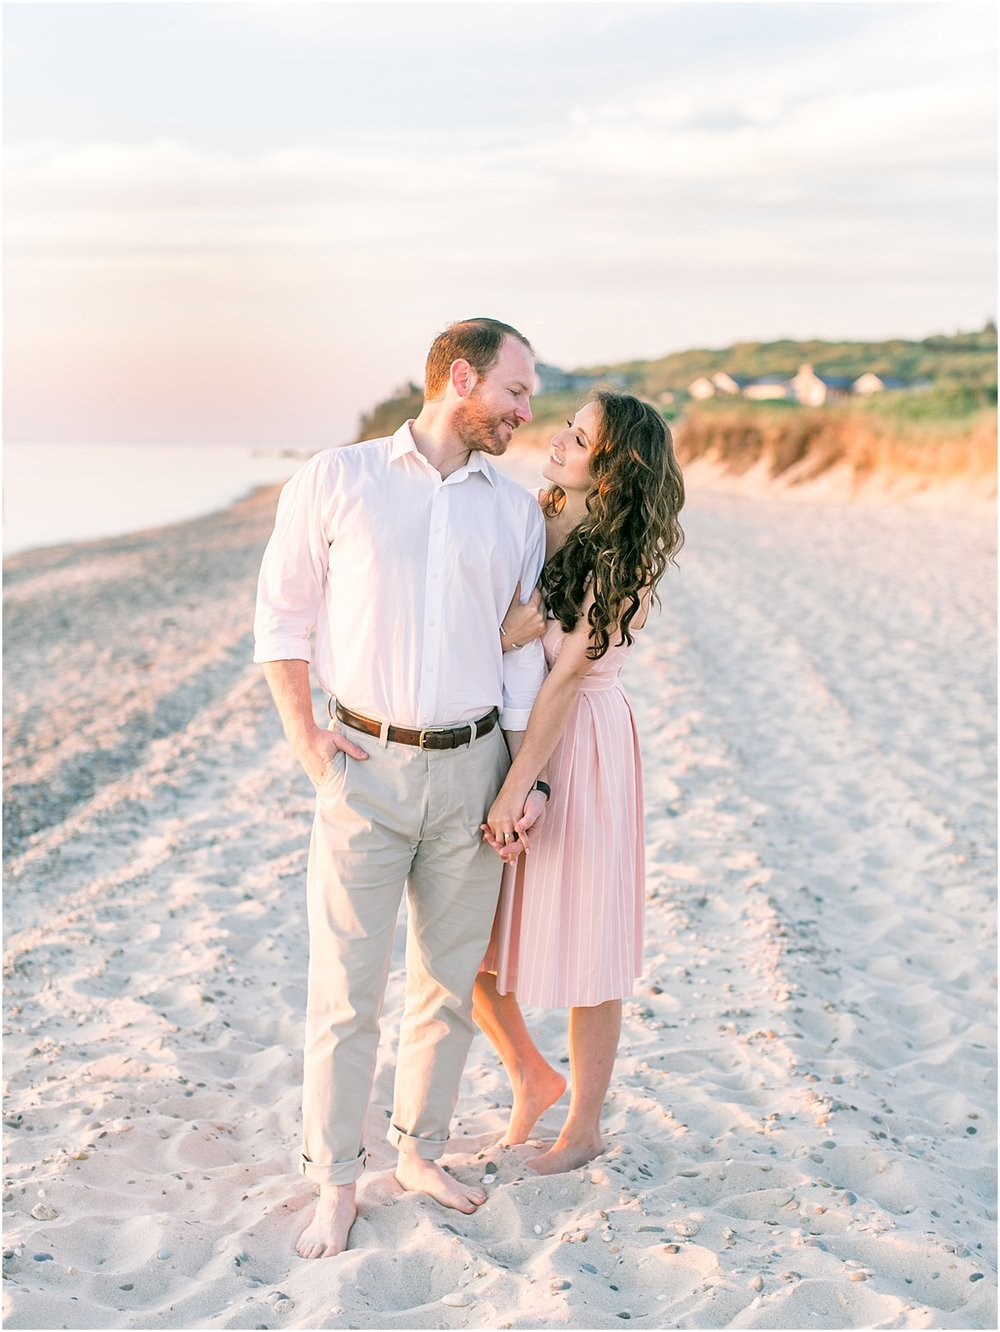 love_and_light_photographs_meredith_chris_engagement_martha_vineyard_marthas_nancys_cape_cod_boston_wedding_photographer_meredith_jane_photography_photo_0452.jpg